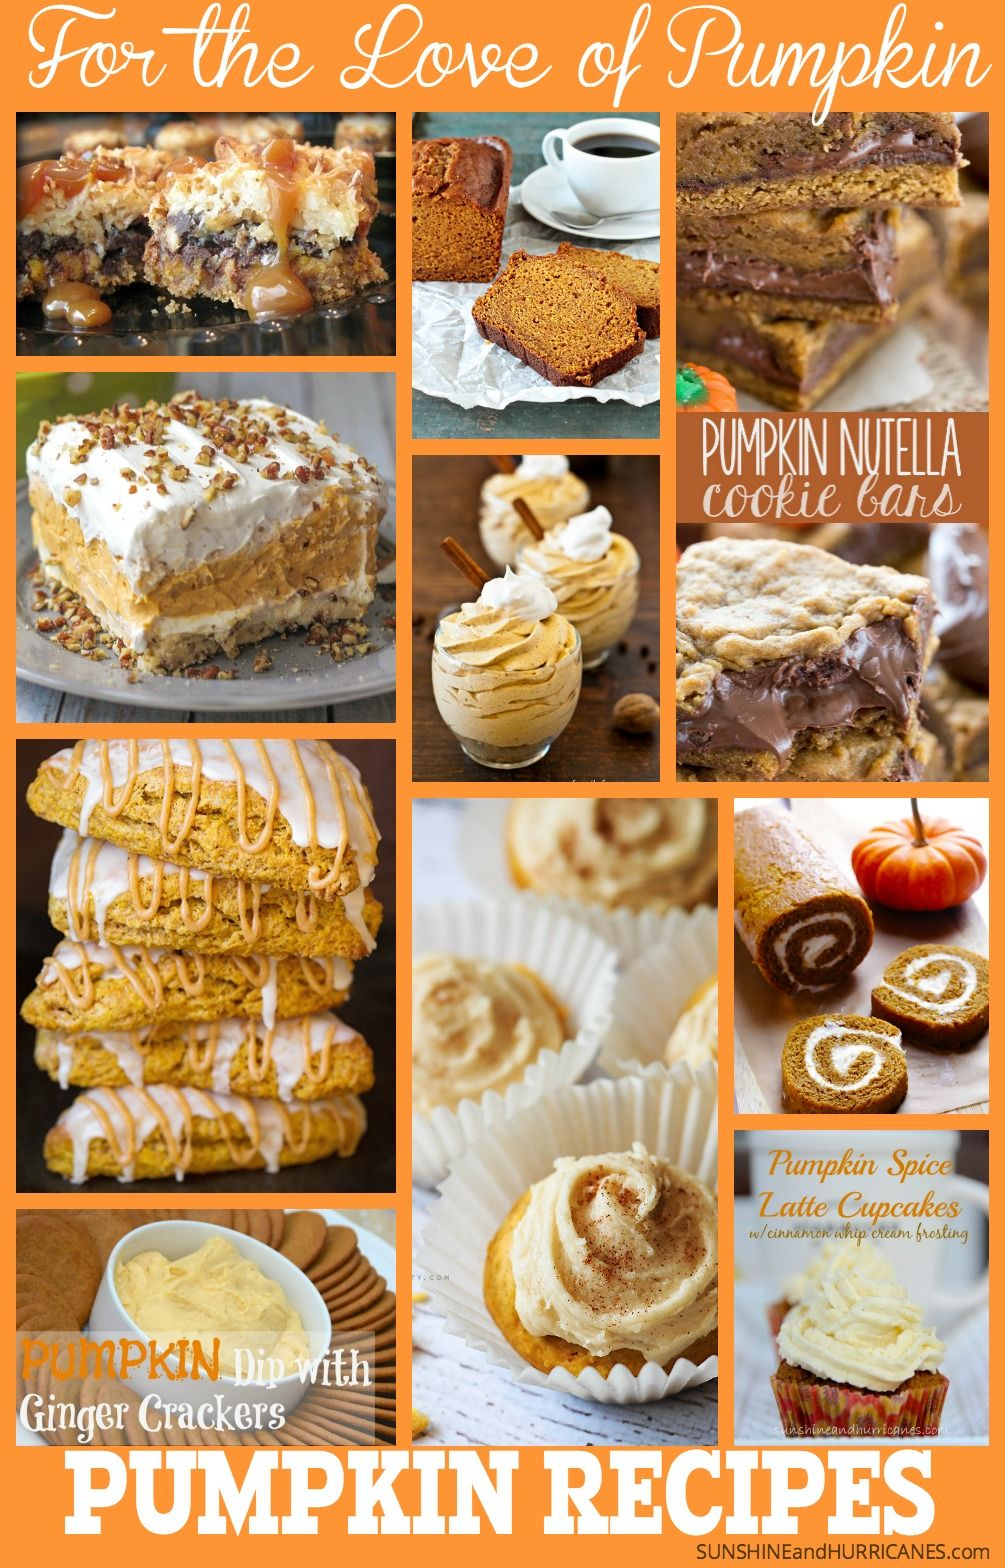 You can feel it right? The slight chill in the air that means fall is coming. Of course, nothing means fall more than pumpkin! If you are a true pumpkin lover, who can't resist the slightly sweet and slightly spicy smell and taste of pumpkin, then these pumpkin recipes are for you! The best of the best we could find, now all you need to do is bake a batch and curl up on the couch with your favorite book or bingeworthy TV.  For the Love of Pumpkin - Pumpkin Recipes. SunshineandHurricanes.com